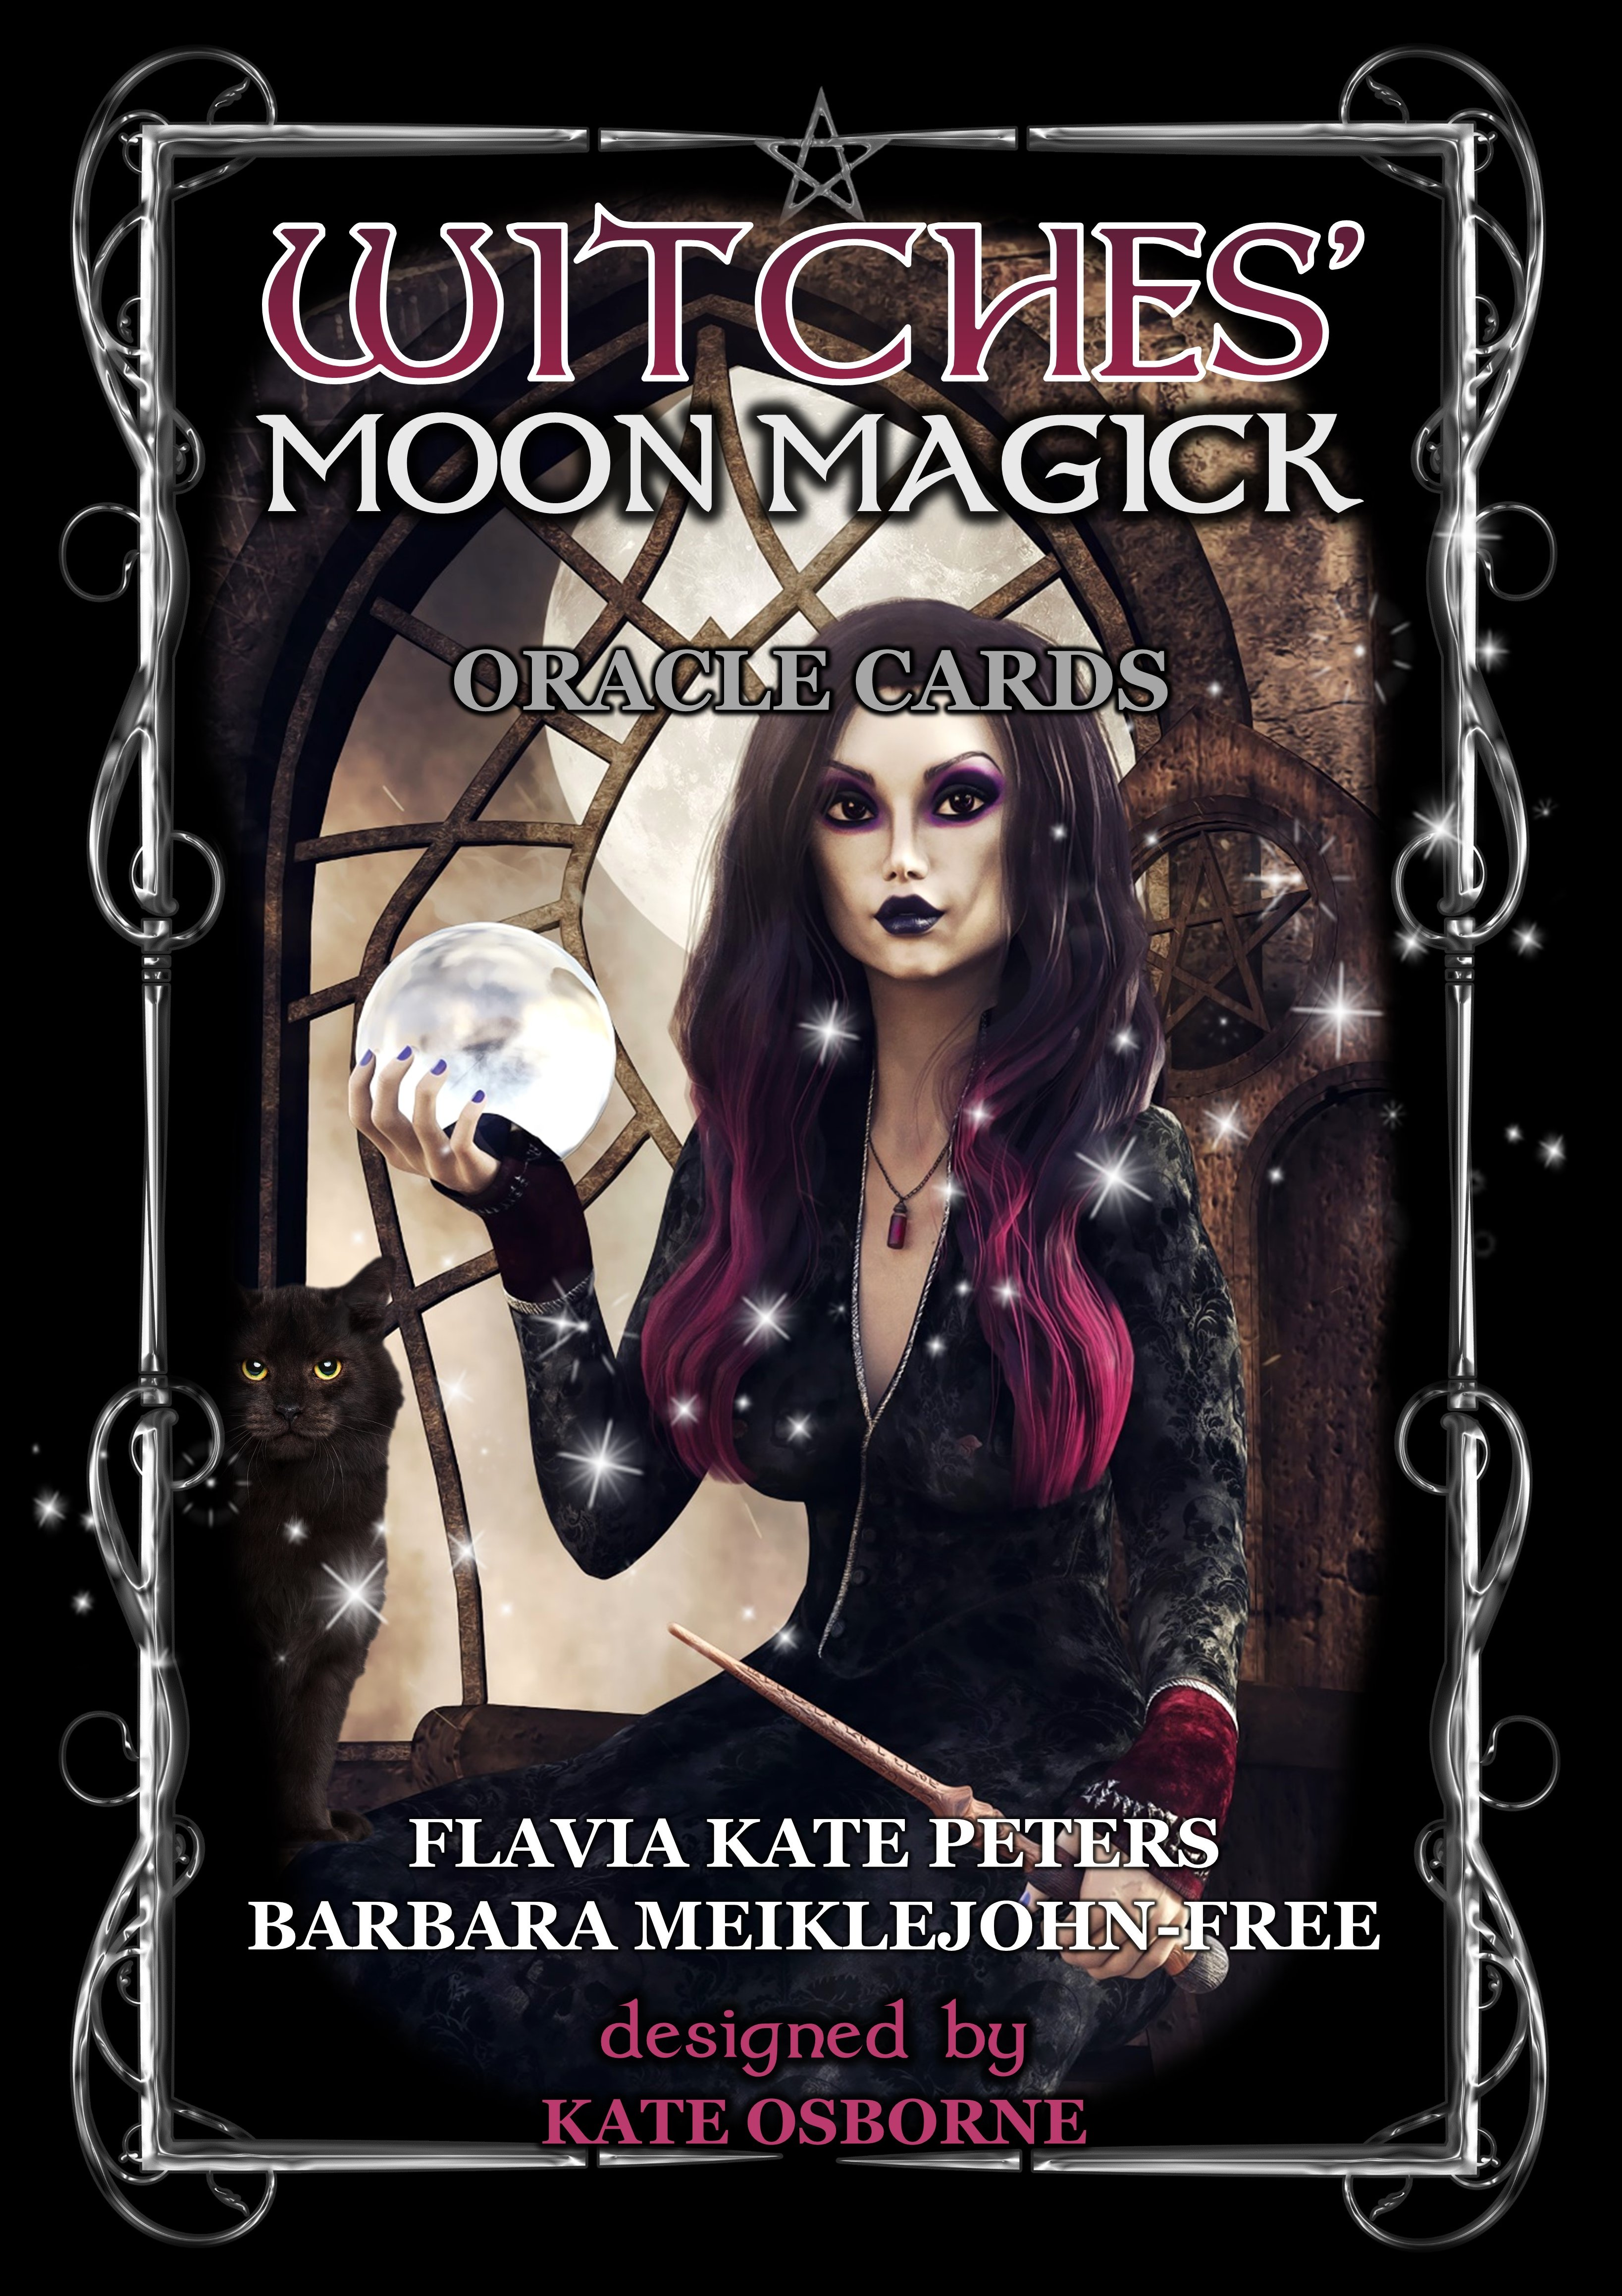 Witches' Moon Magick Oracle Cards